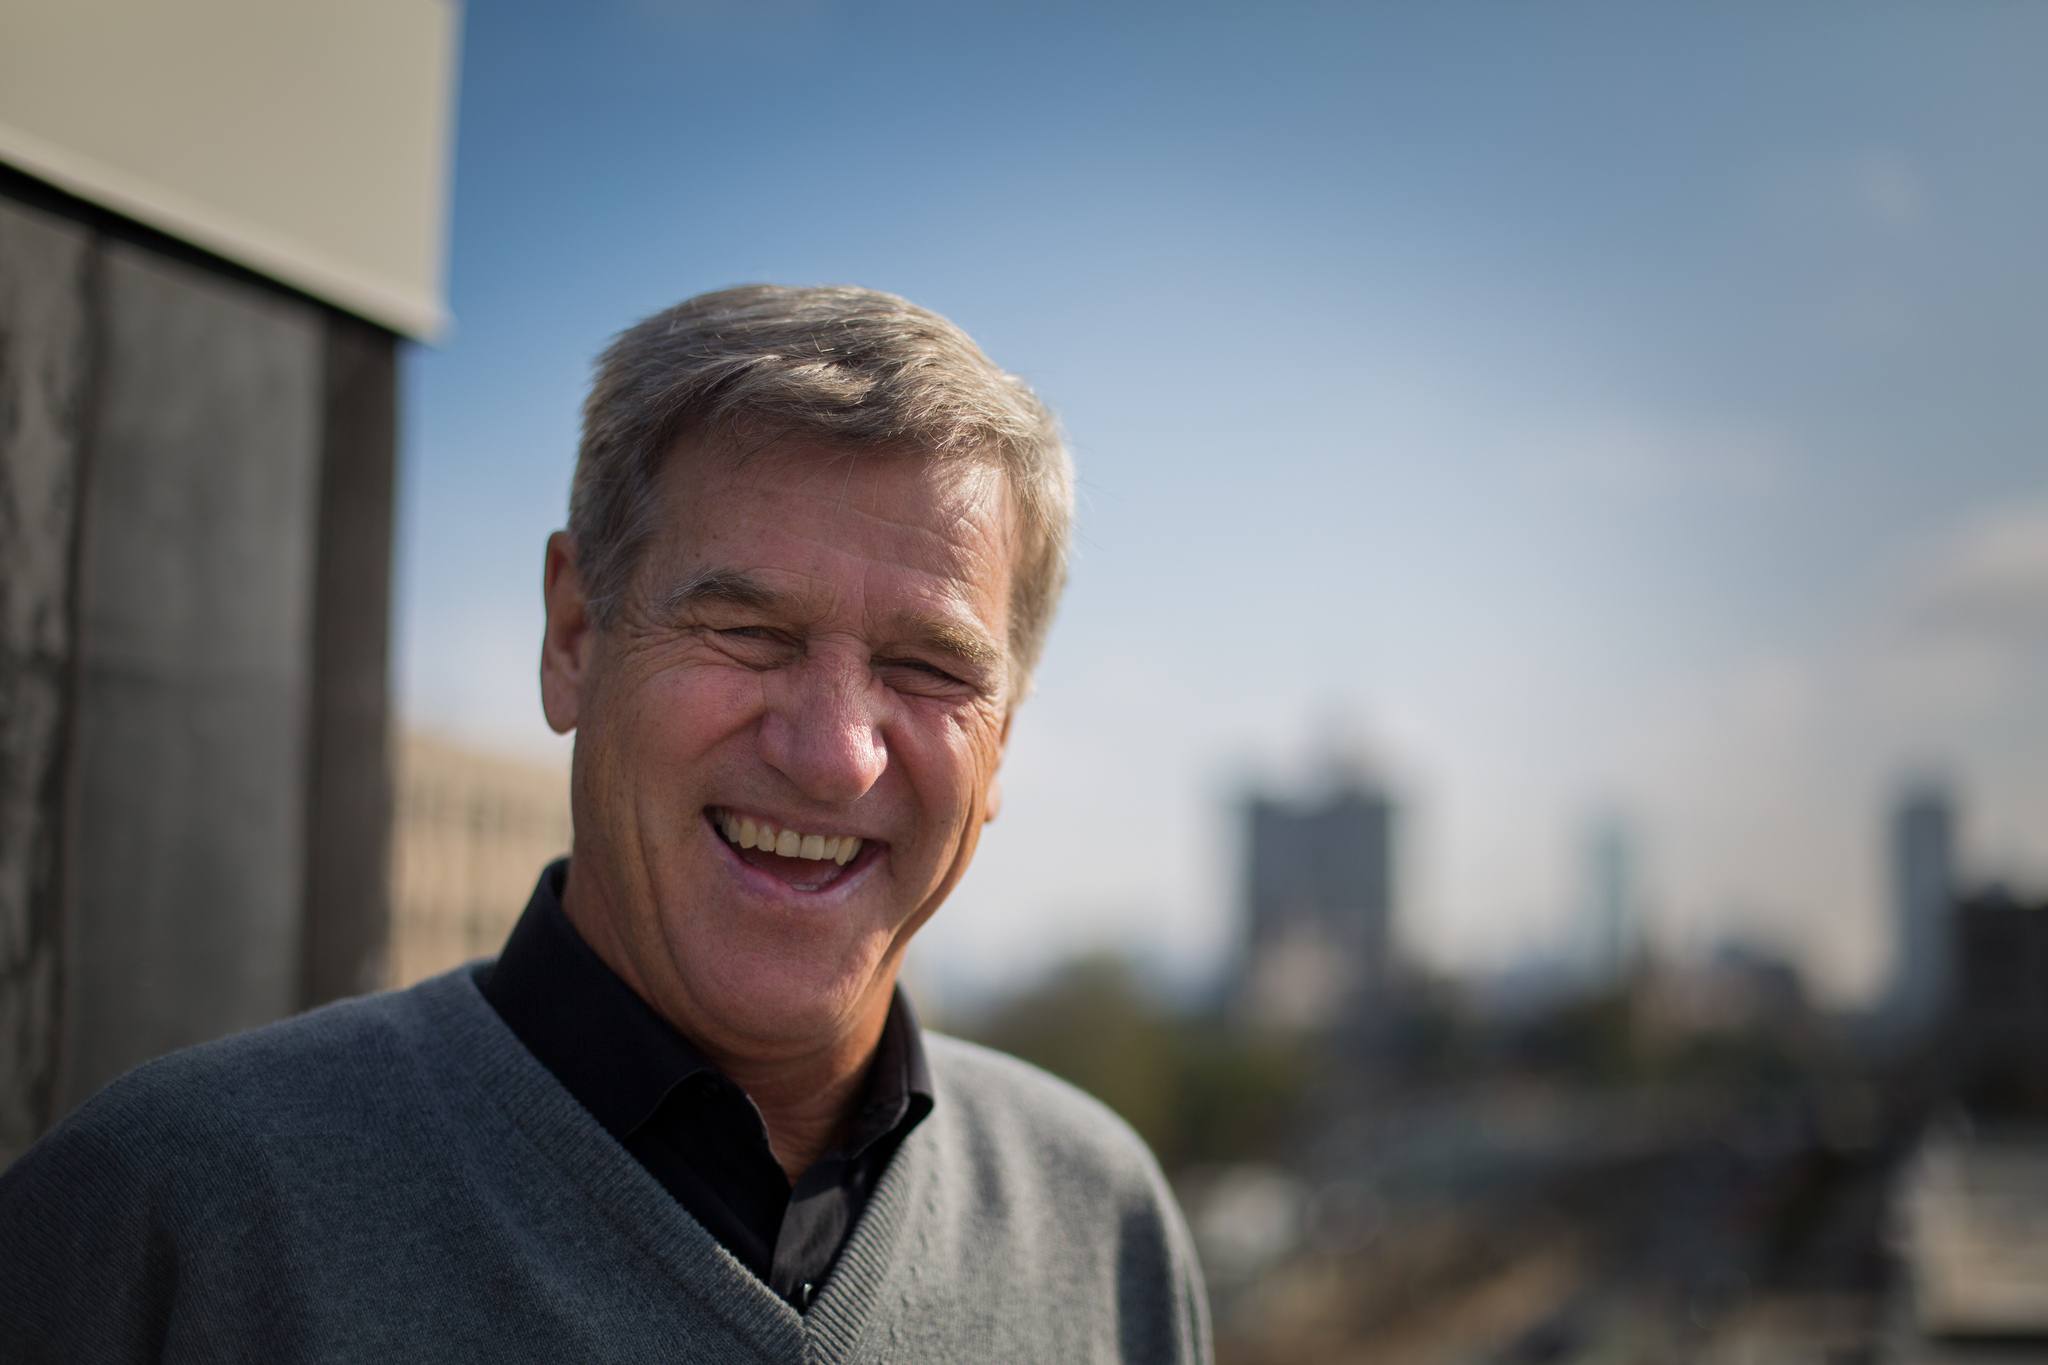 Boston Bruins legend Bobby Orr